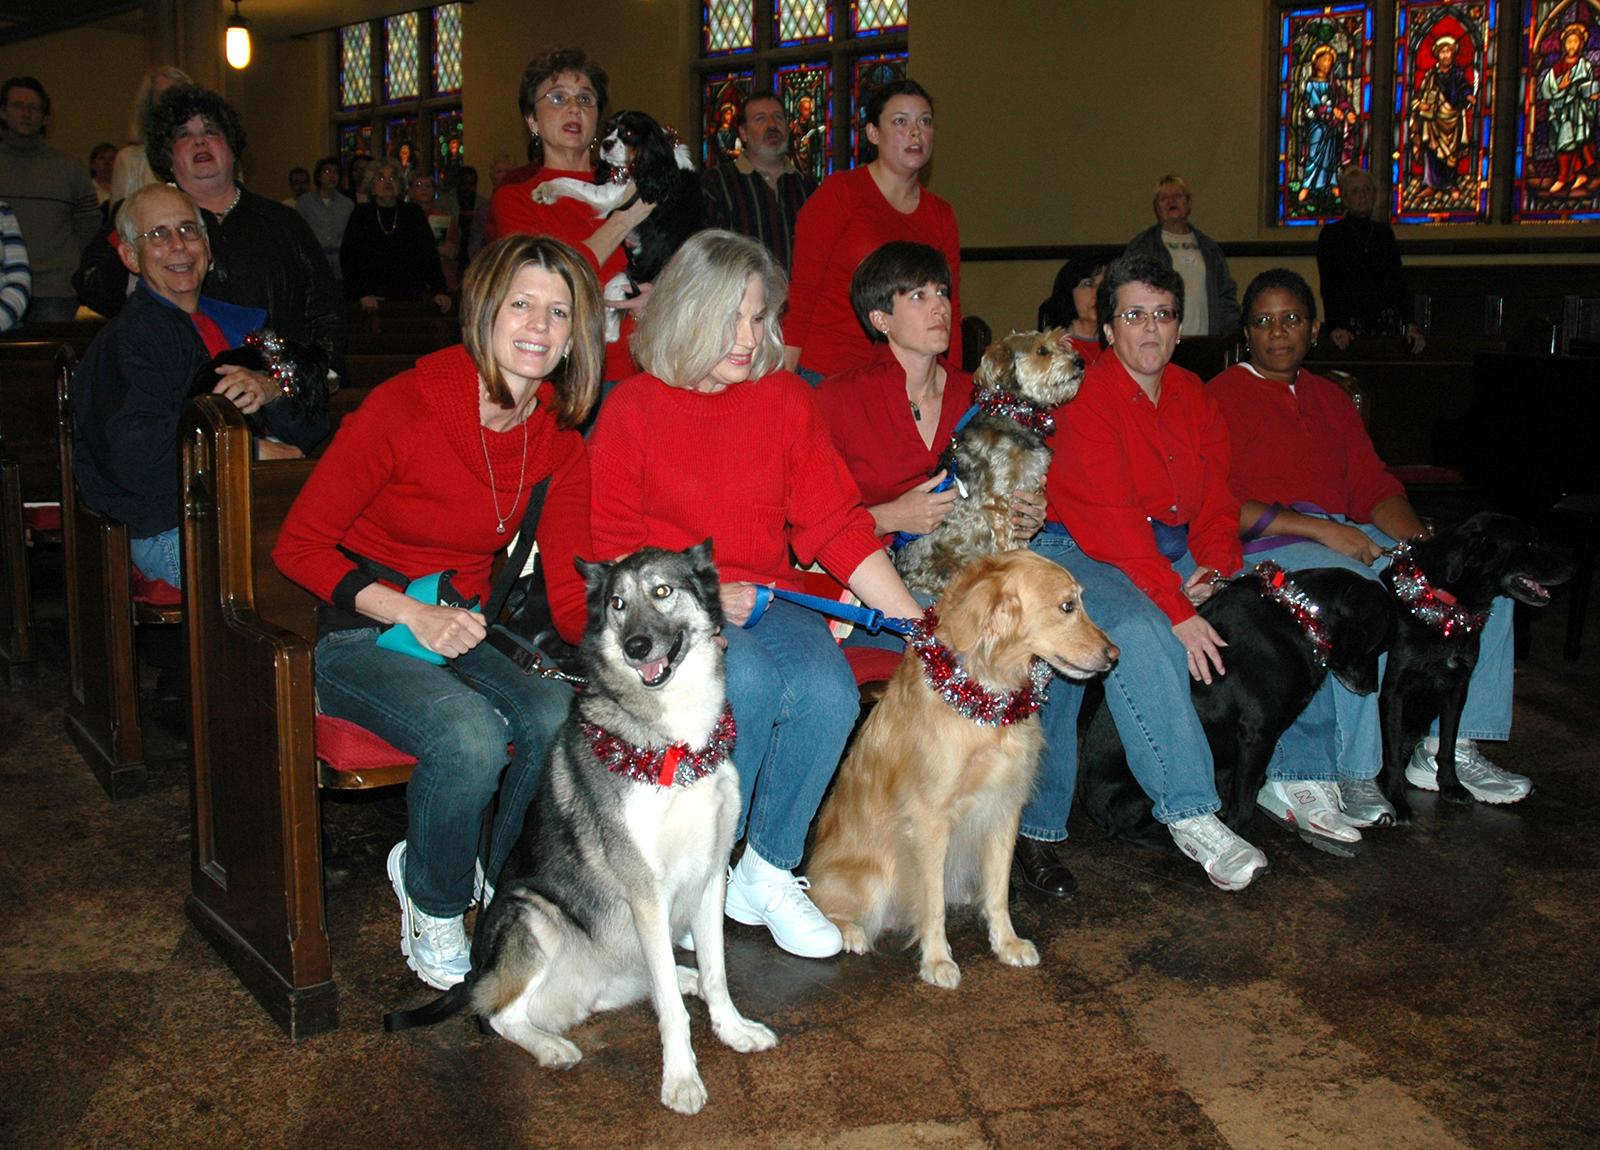 Newly trained therapy dogs are blessed during a service at Quapaw Quarter UMC in Little Rock, Arkansas, in 2007. Photo by Celia Bernheimer